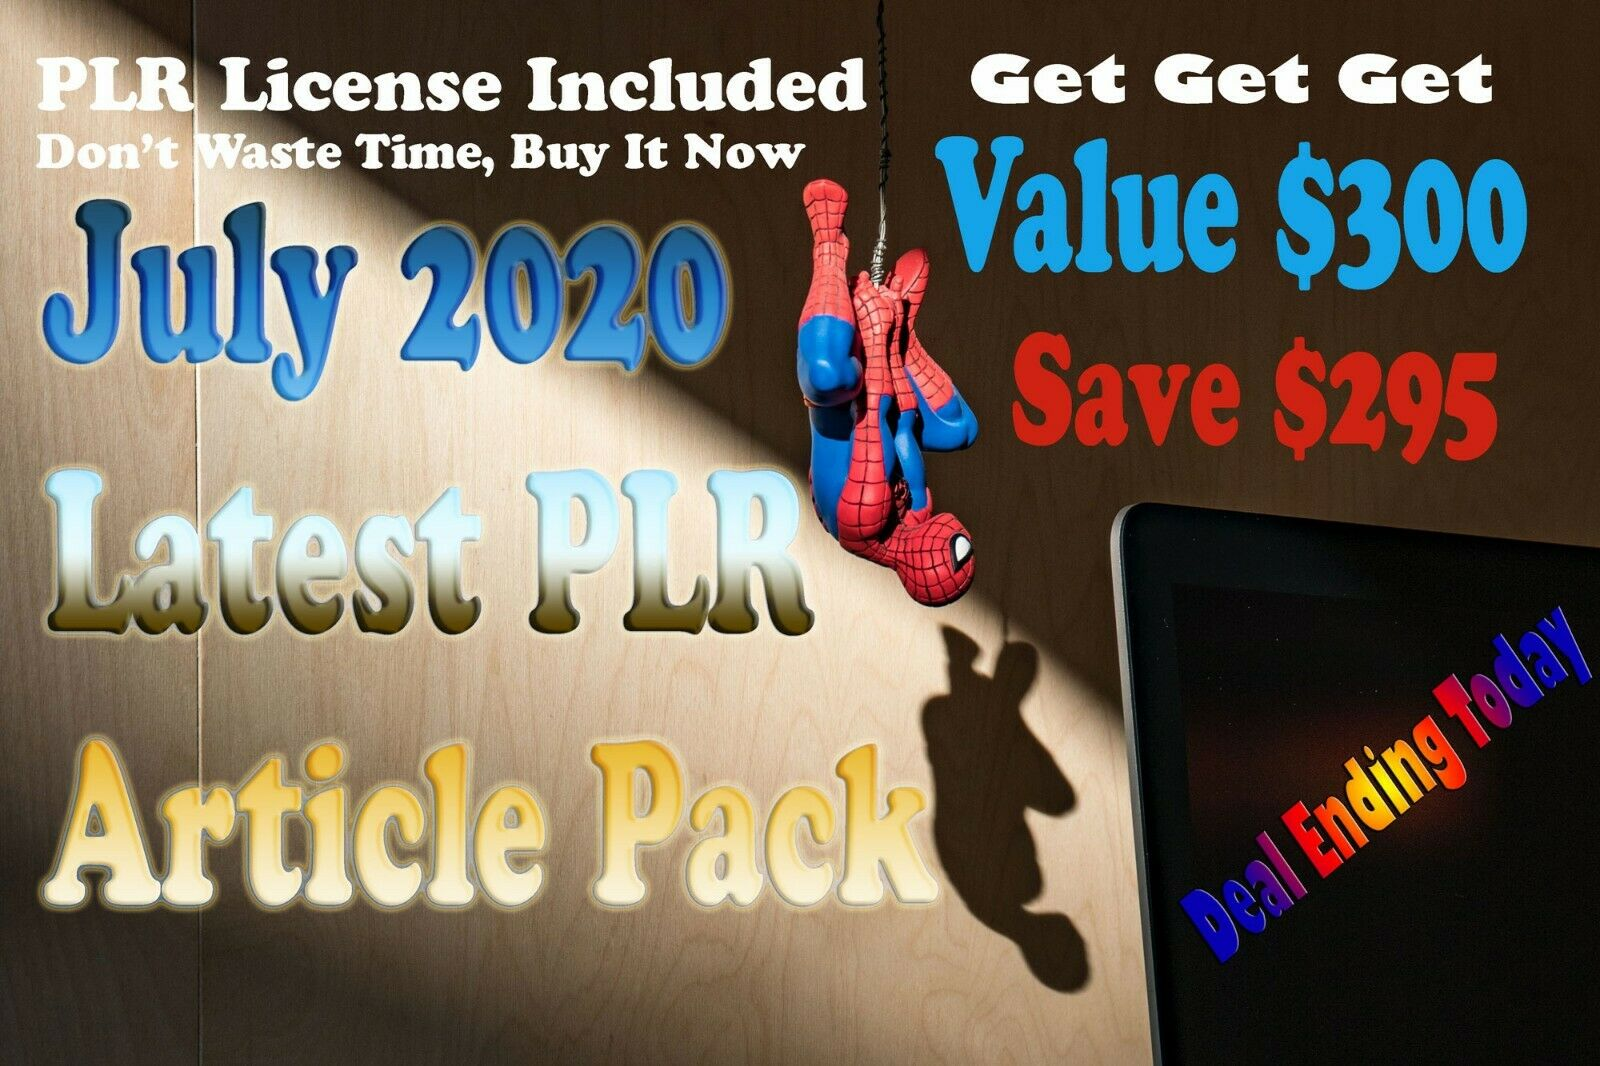 PLR Article Pack Latest July 2020